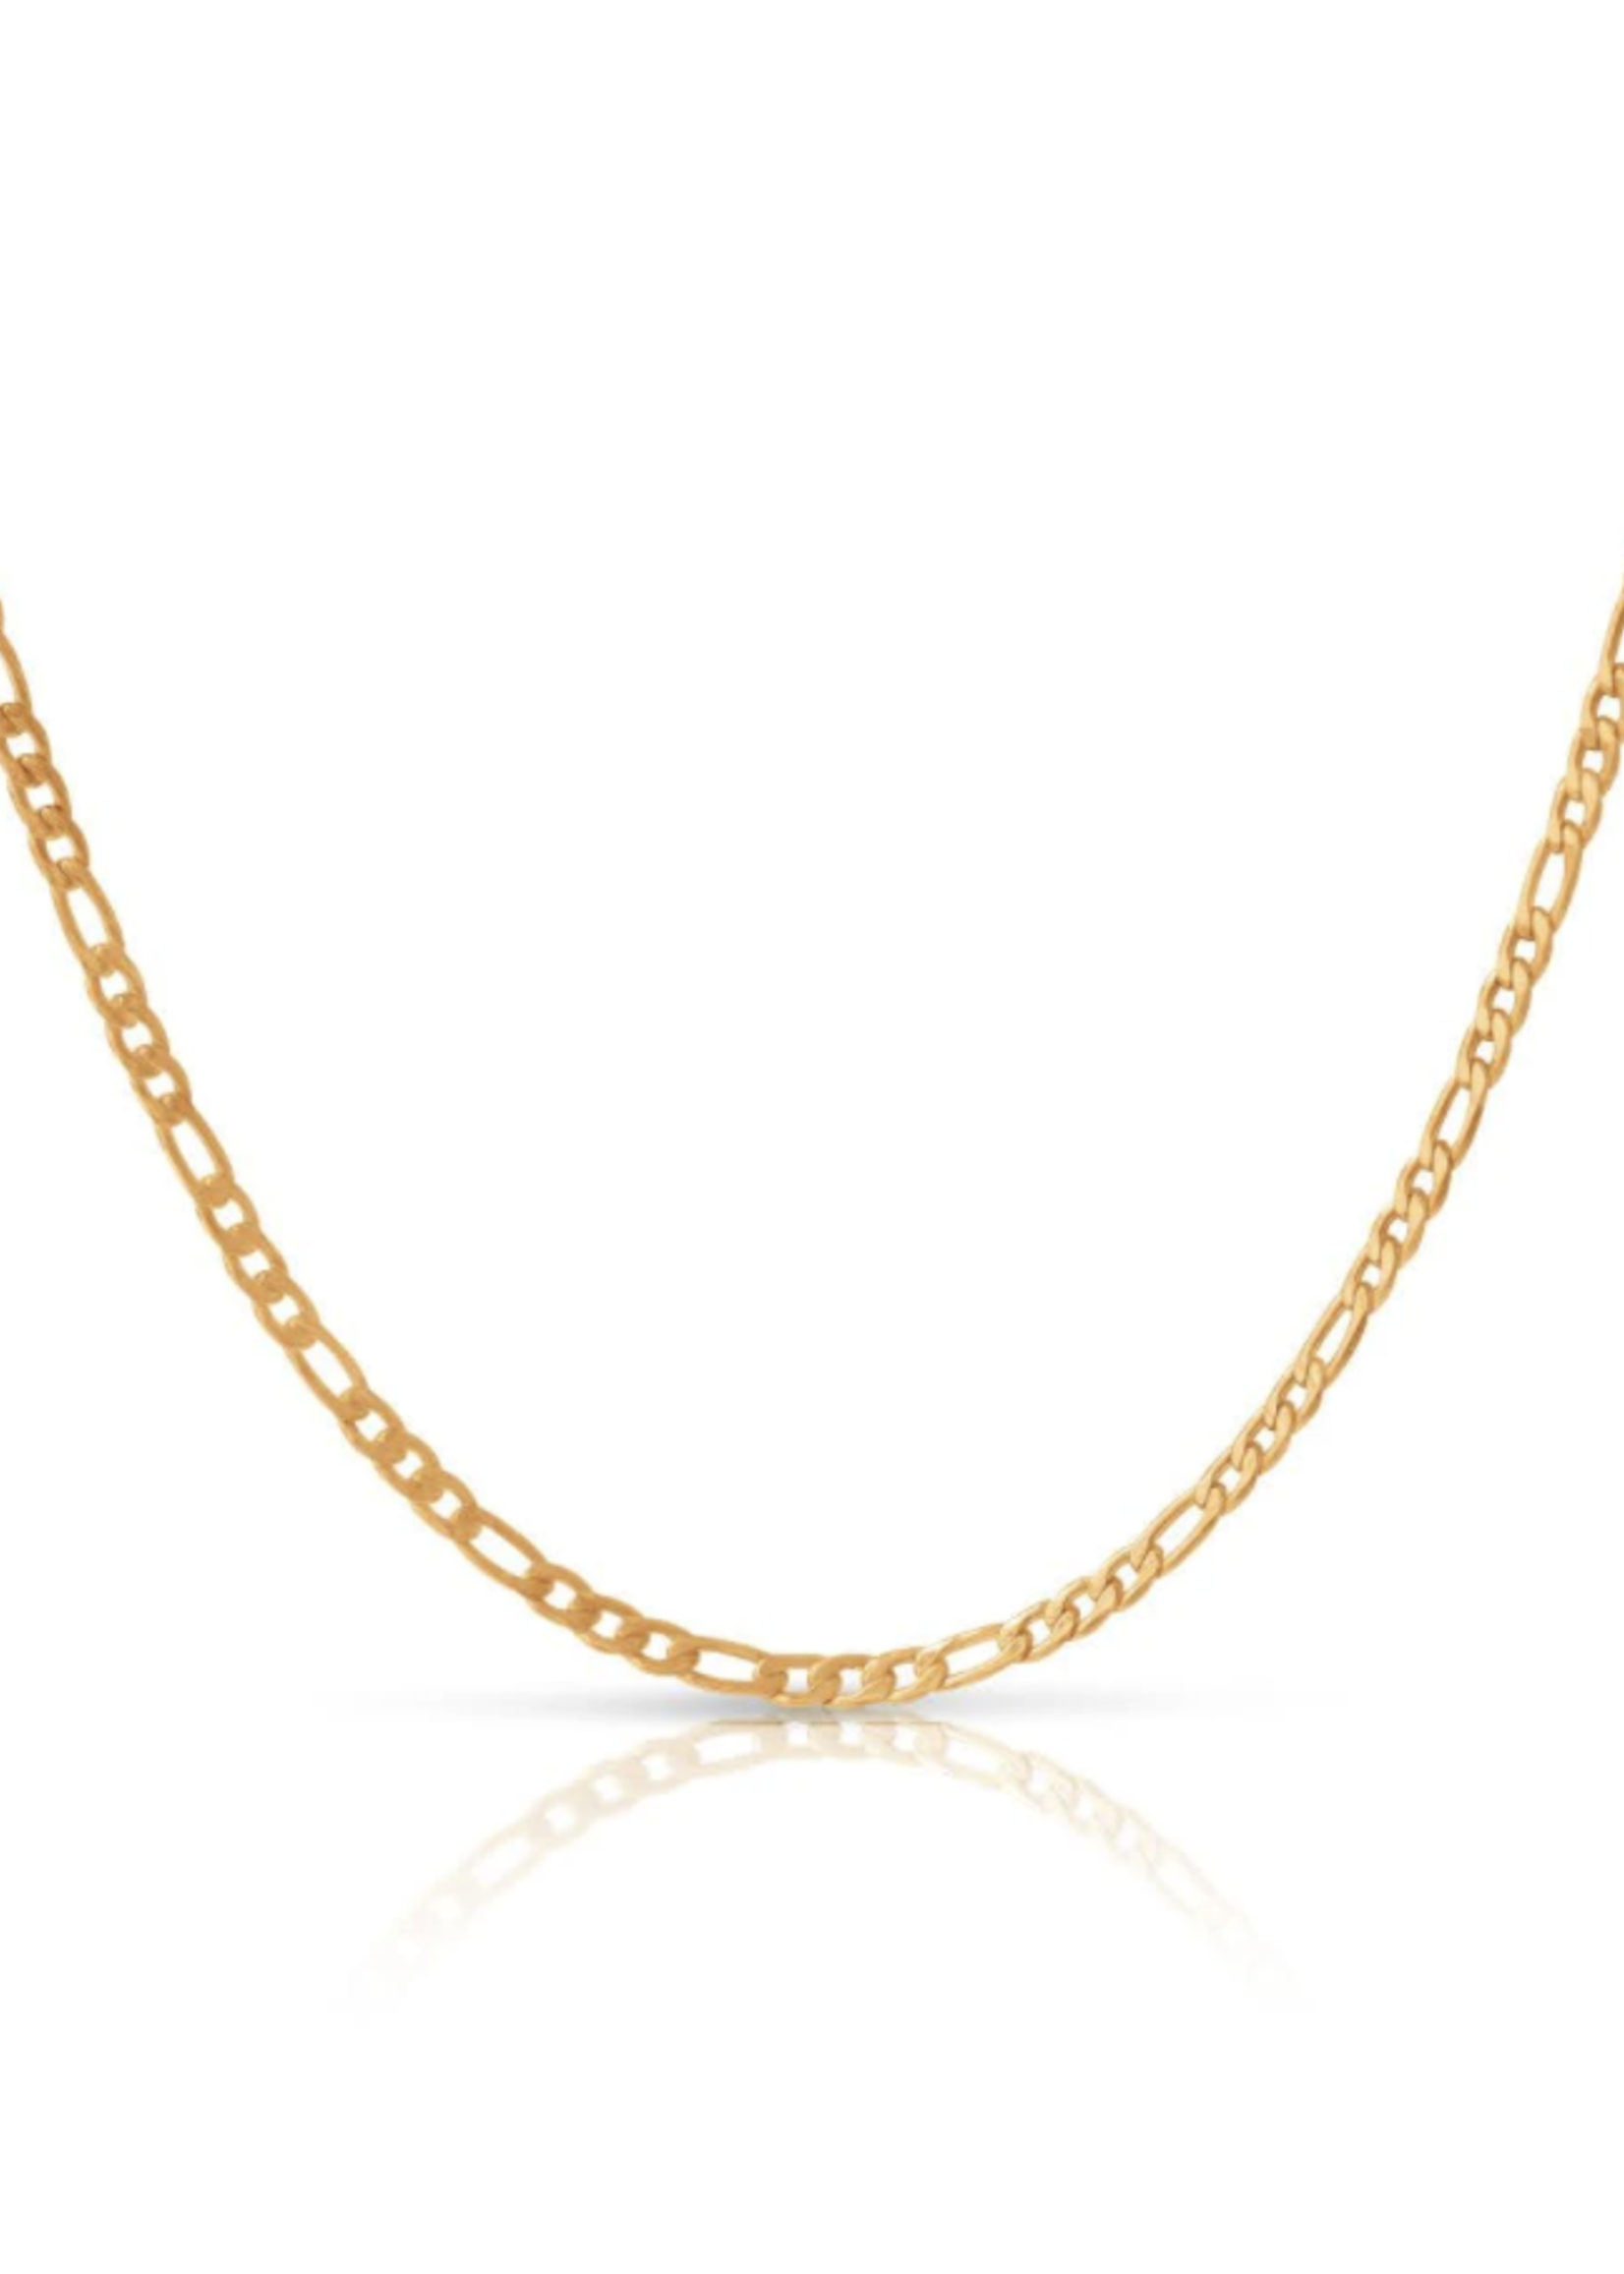 House of Jewels Jax Necklace